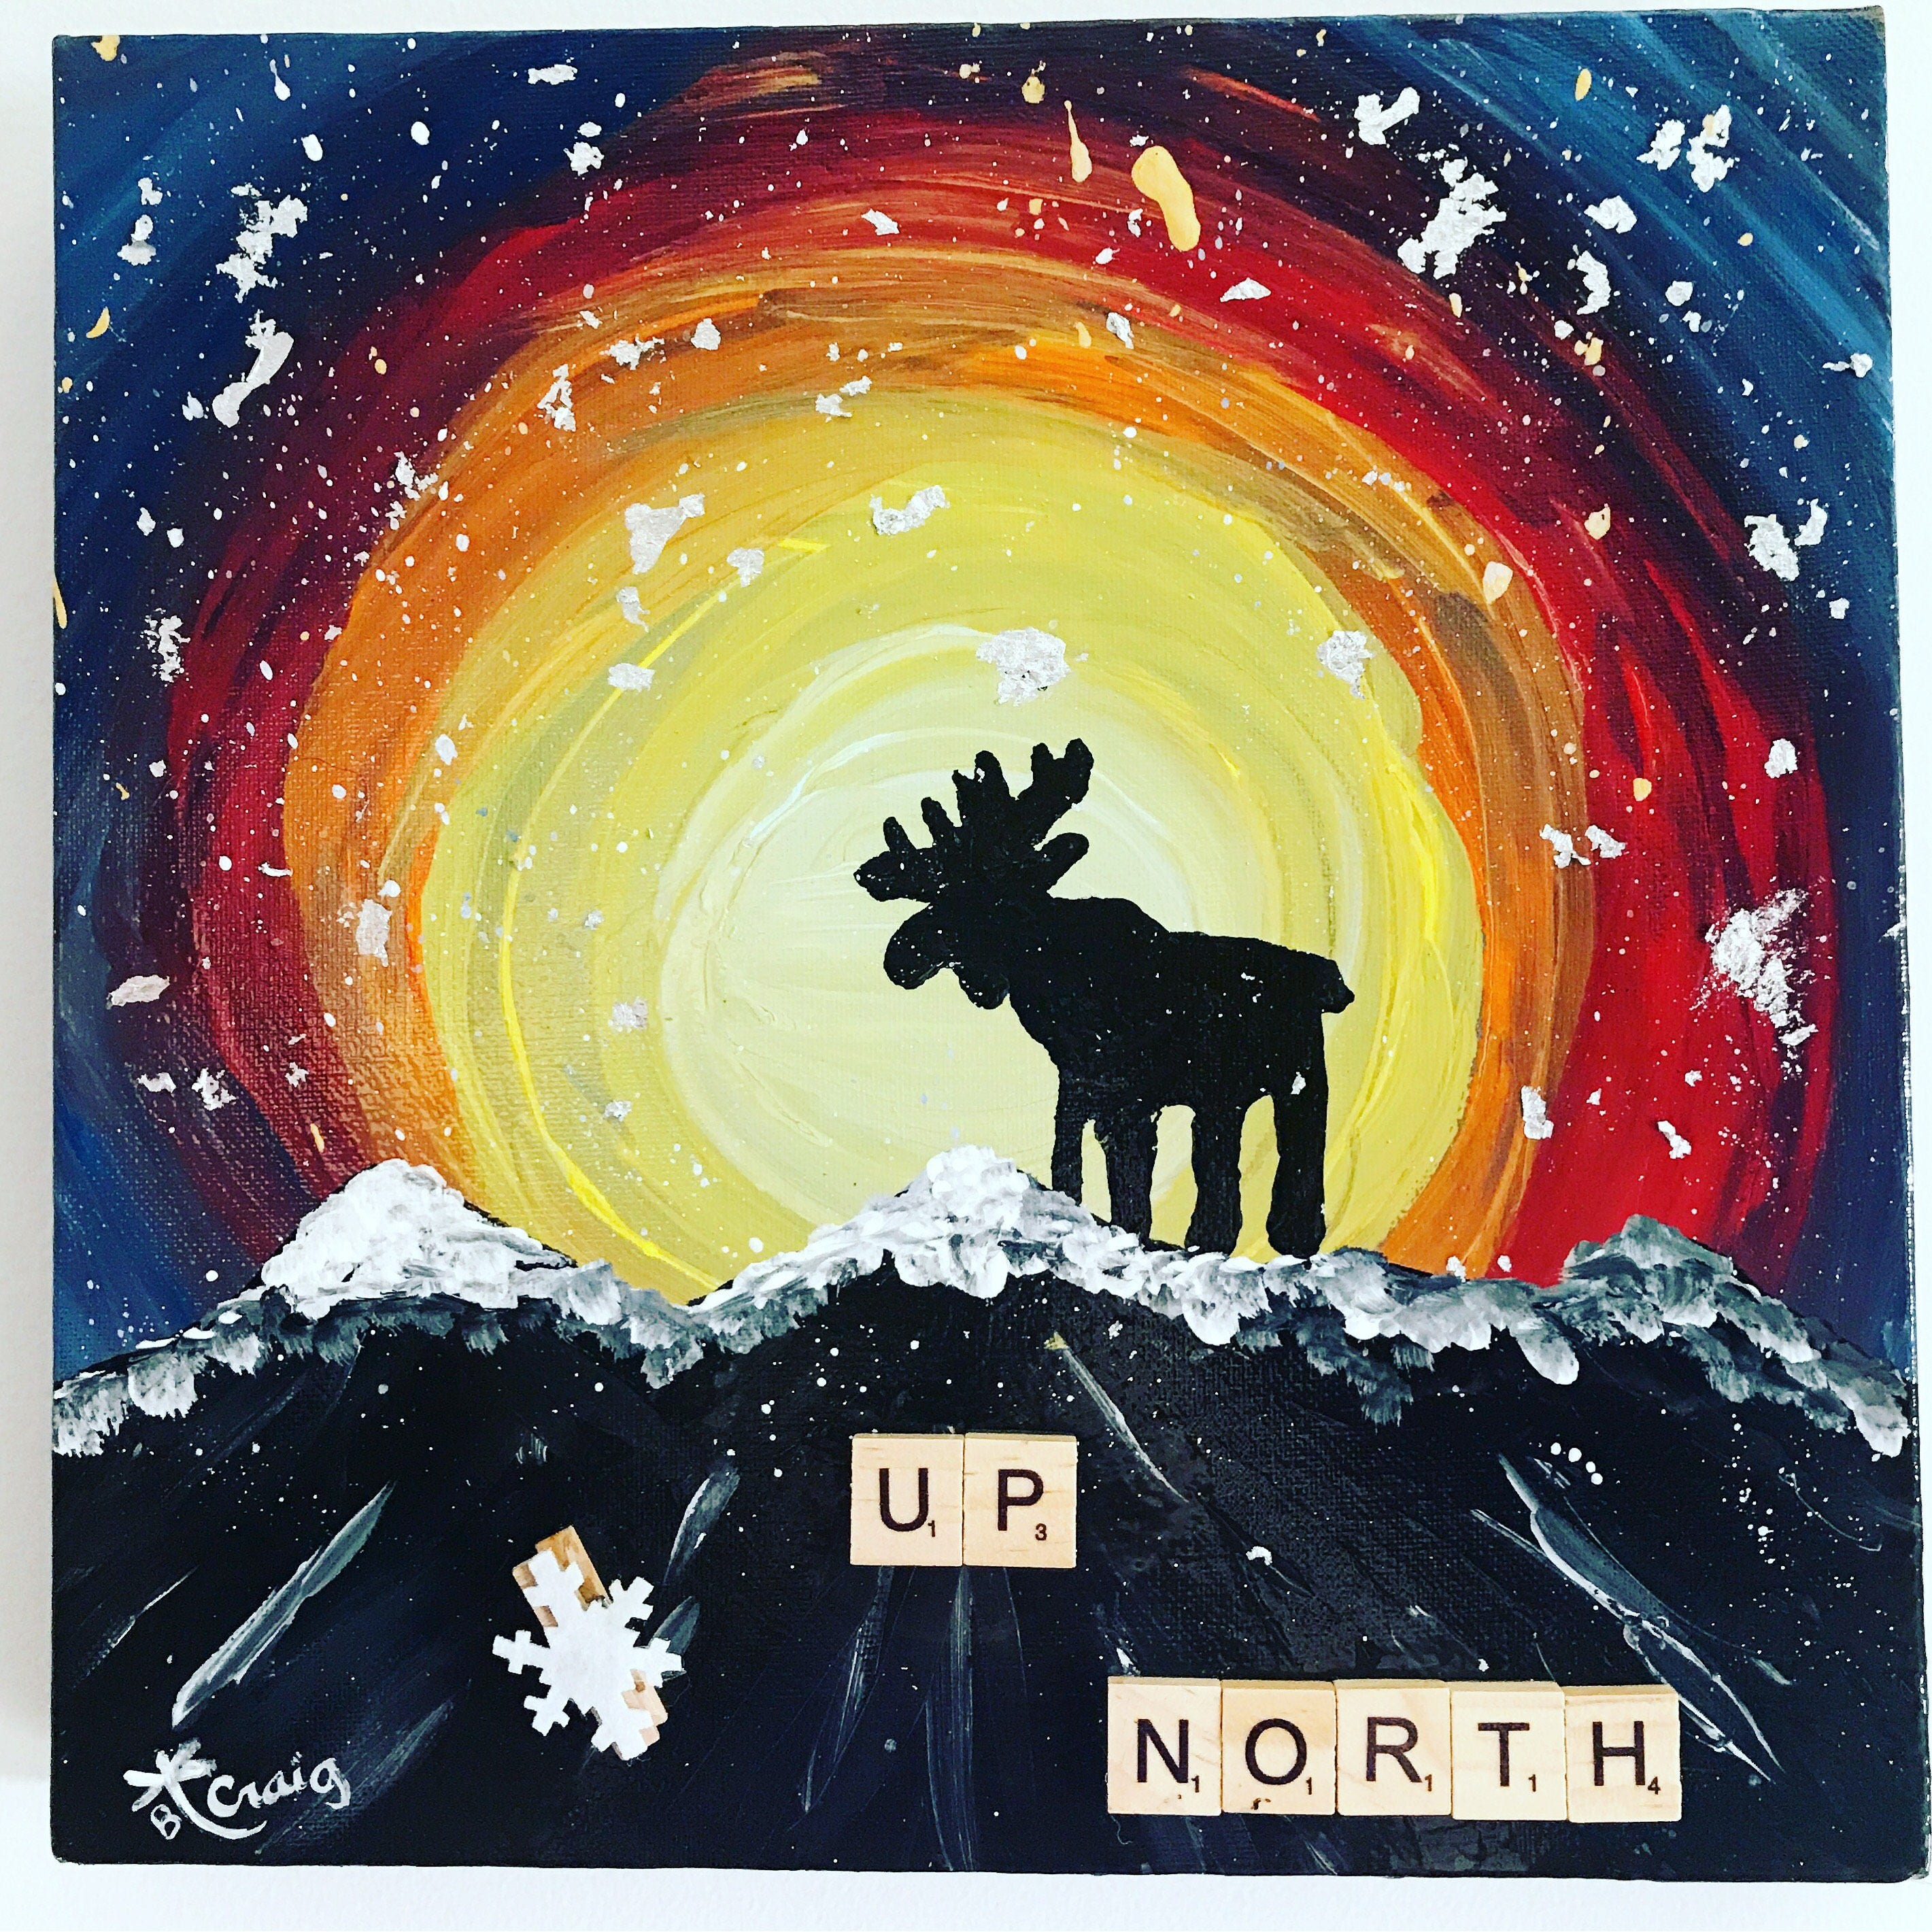 Up north moose painting